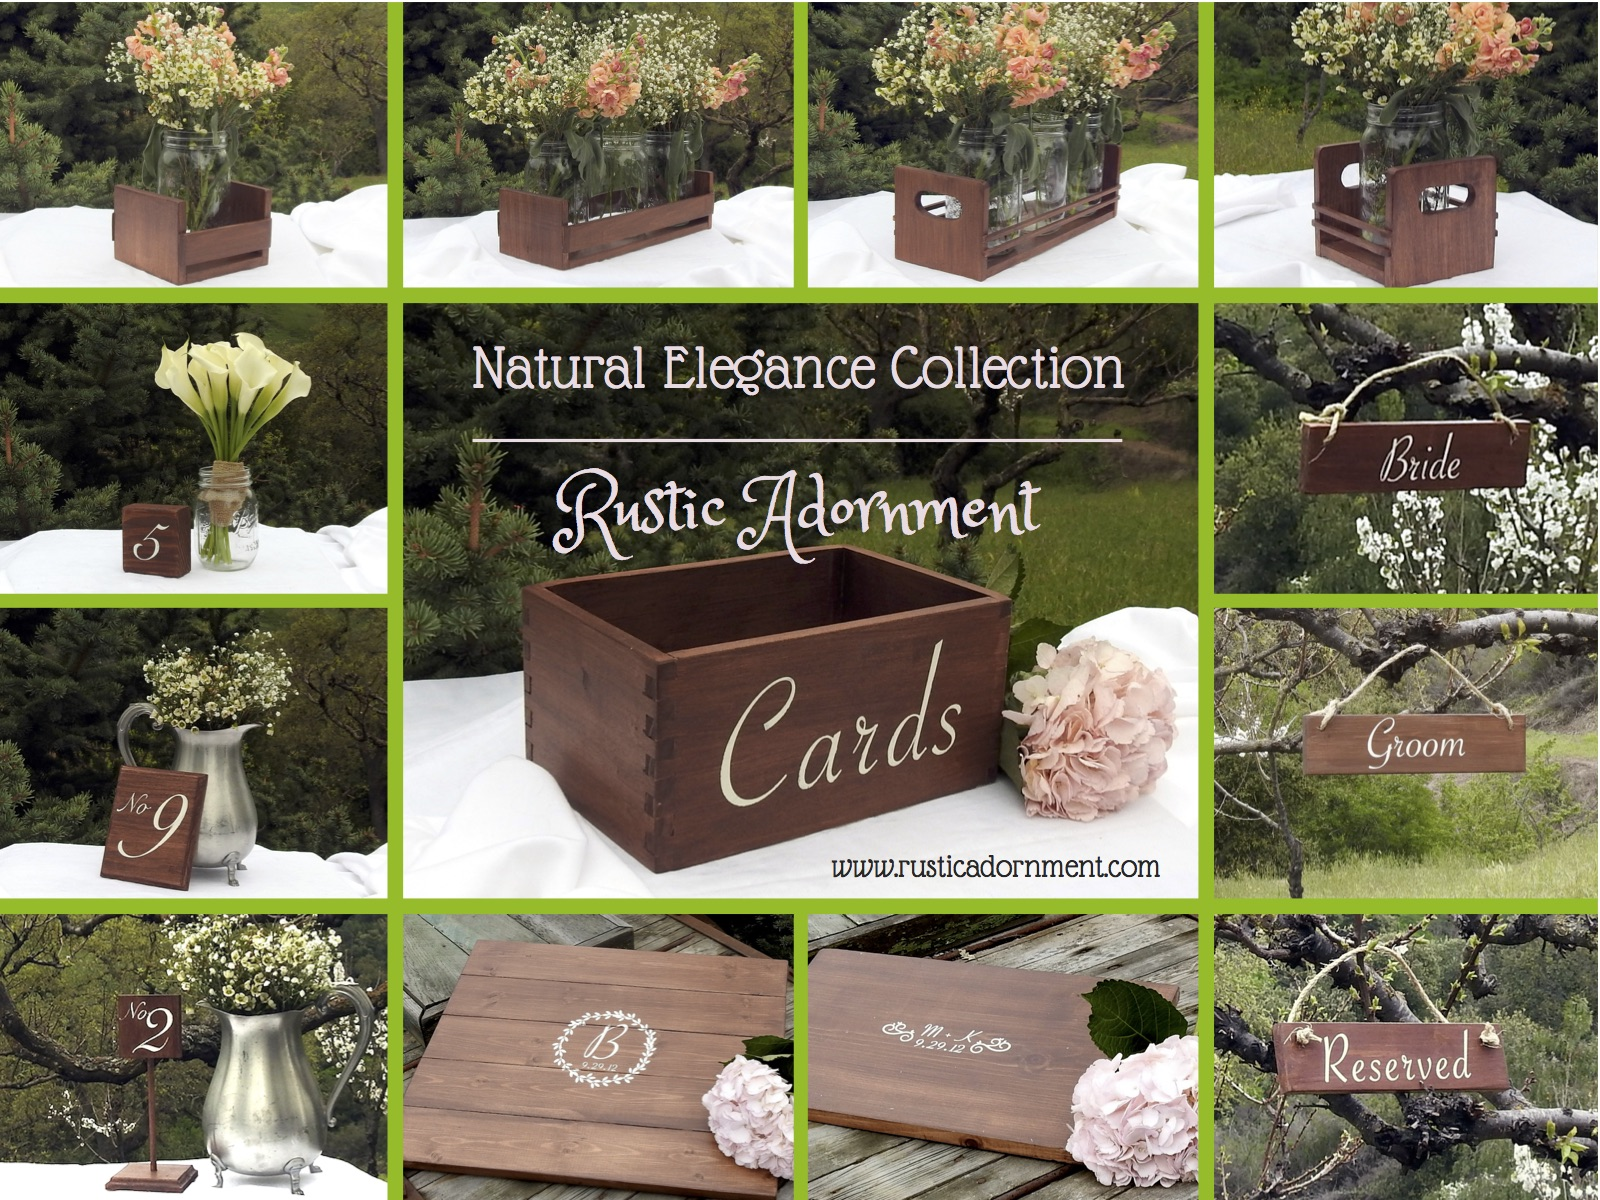 Wedding Ideas For Summer: Rustic Adornment Releases Summer Line Of Wedding Decor